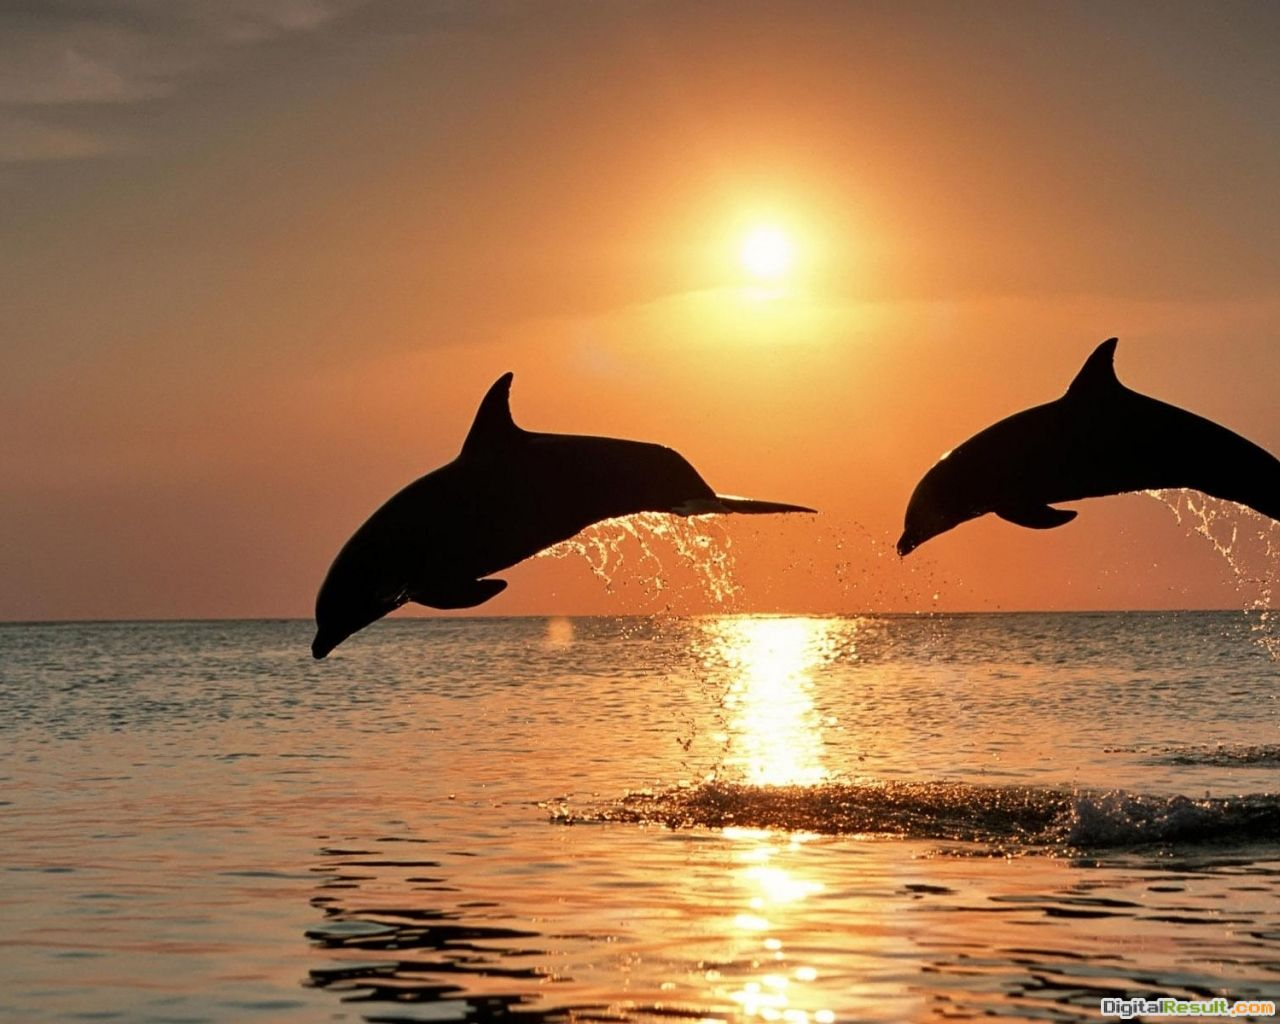 PicturesDownload Dolphin Wallpapers Wallpaper Dolphin Wallpaper 268